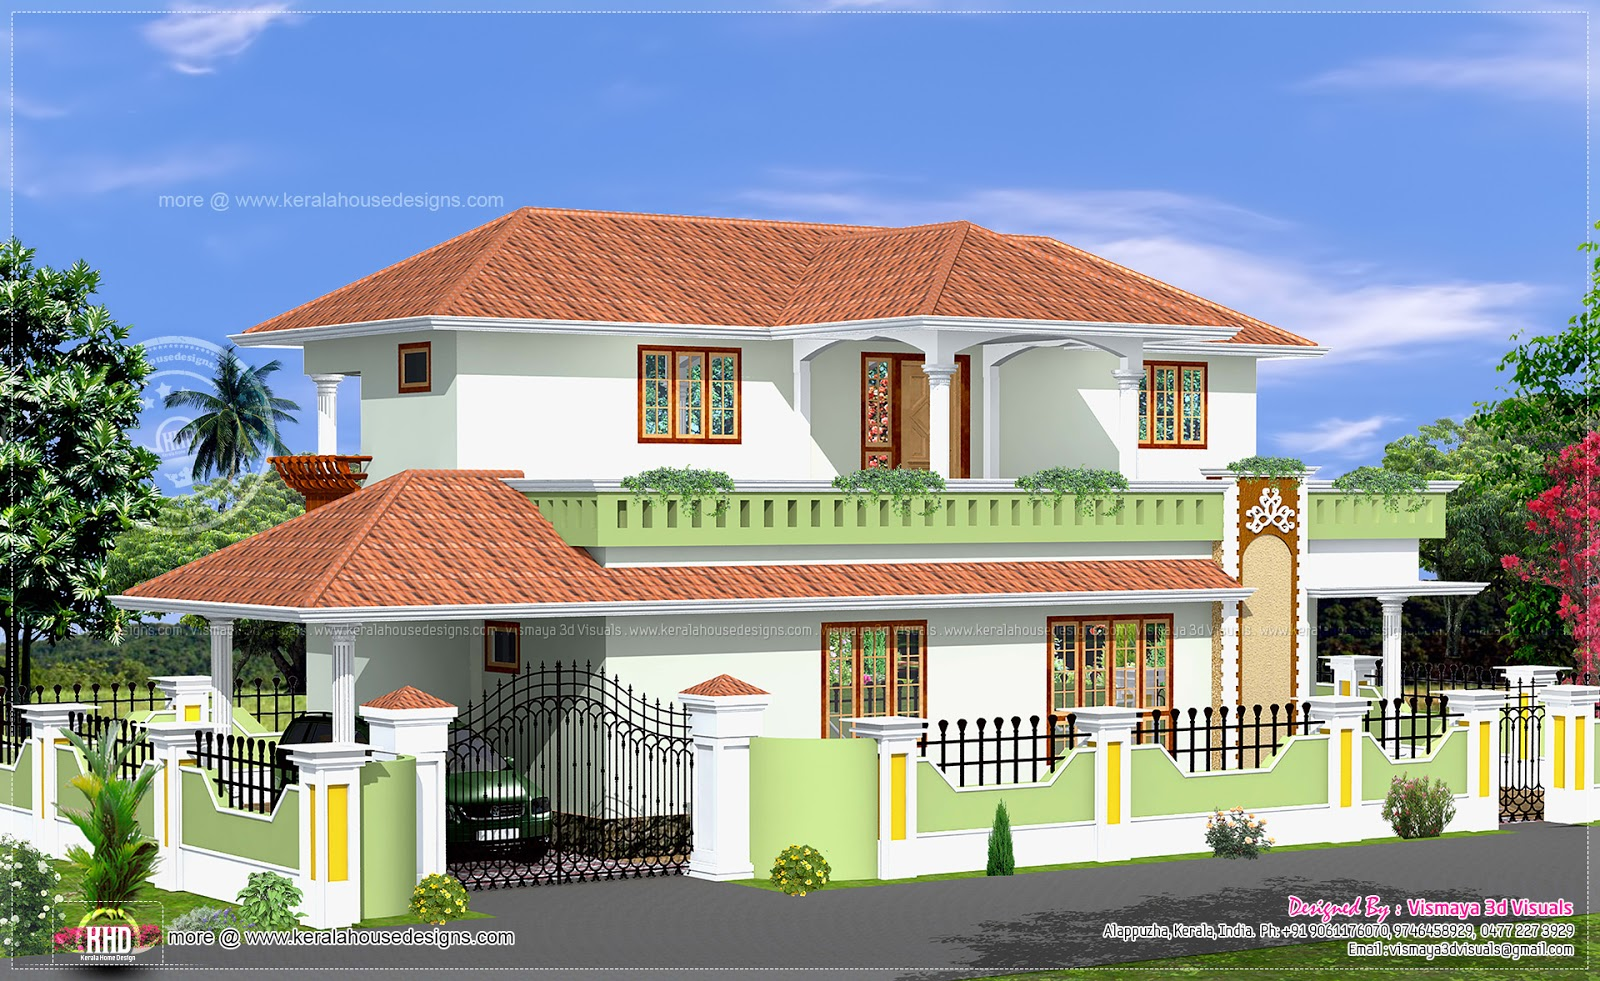 Simple House Designs Kerala Style Home Design And Style: latest simple house design